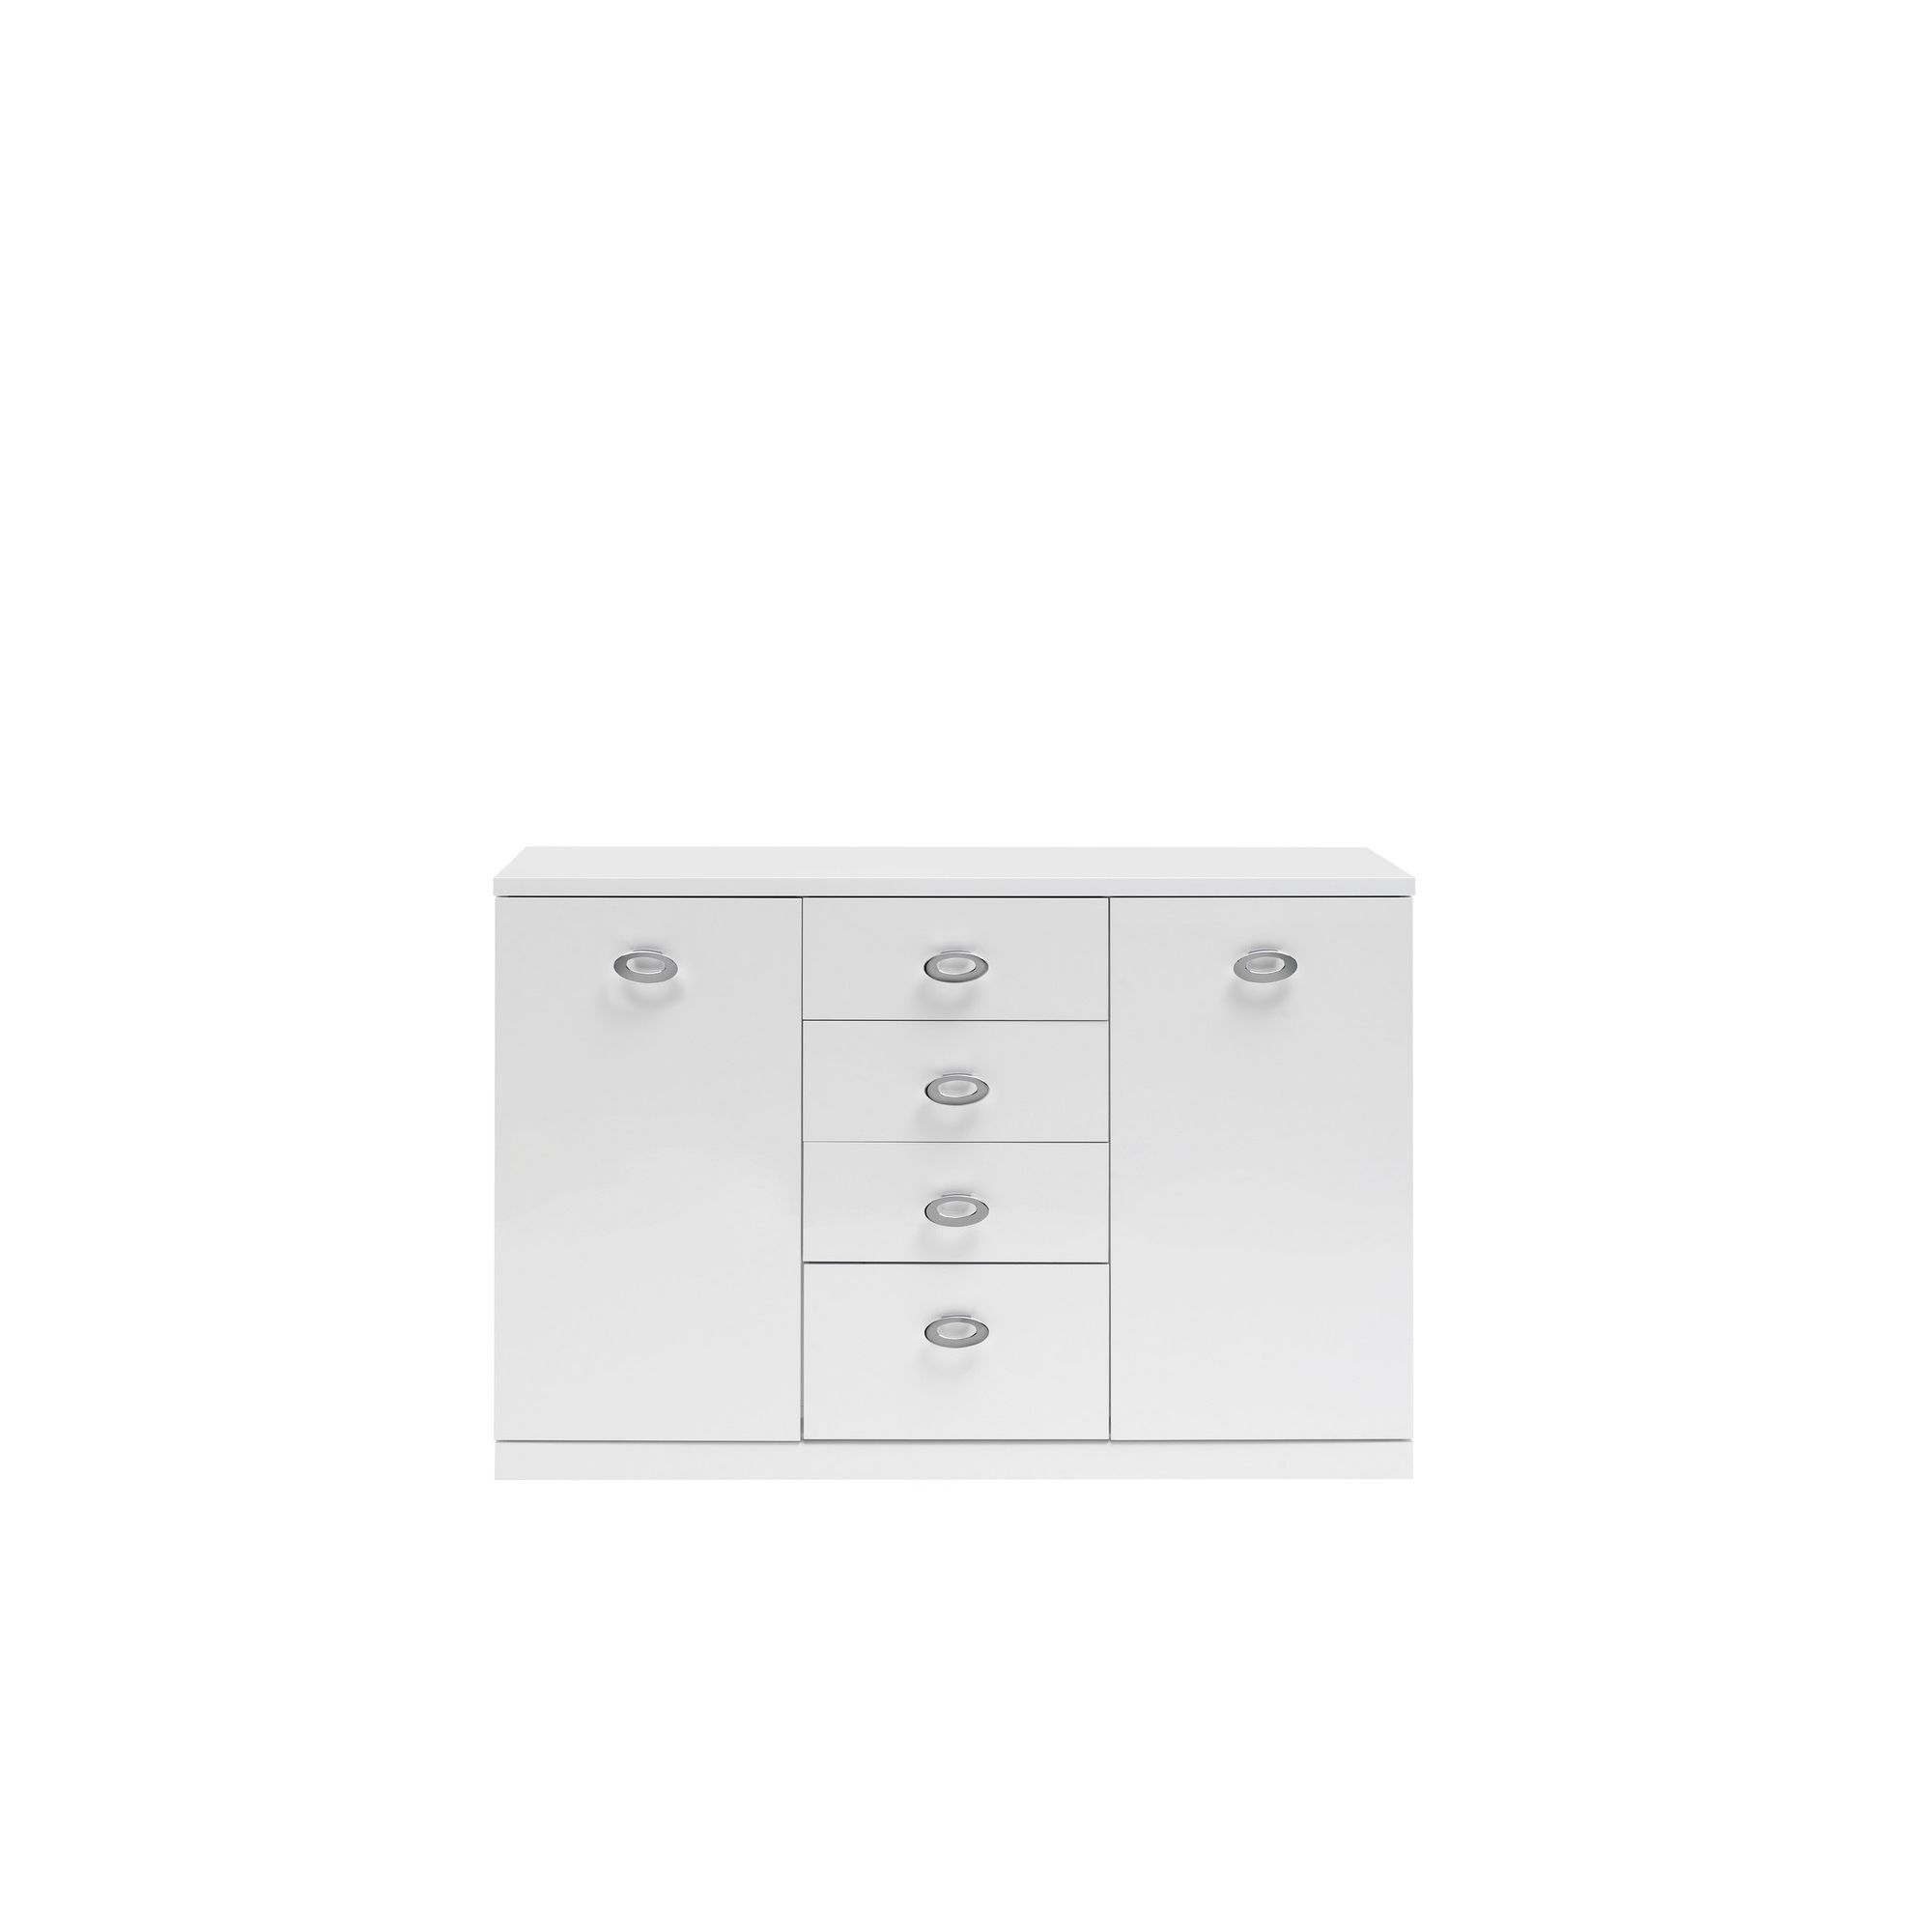 Caxton Manhattan Small 2 Door / 4 Drawer Sideboard in White Gloss at Tesco Direct